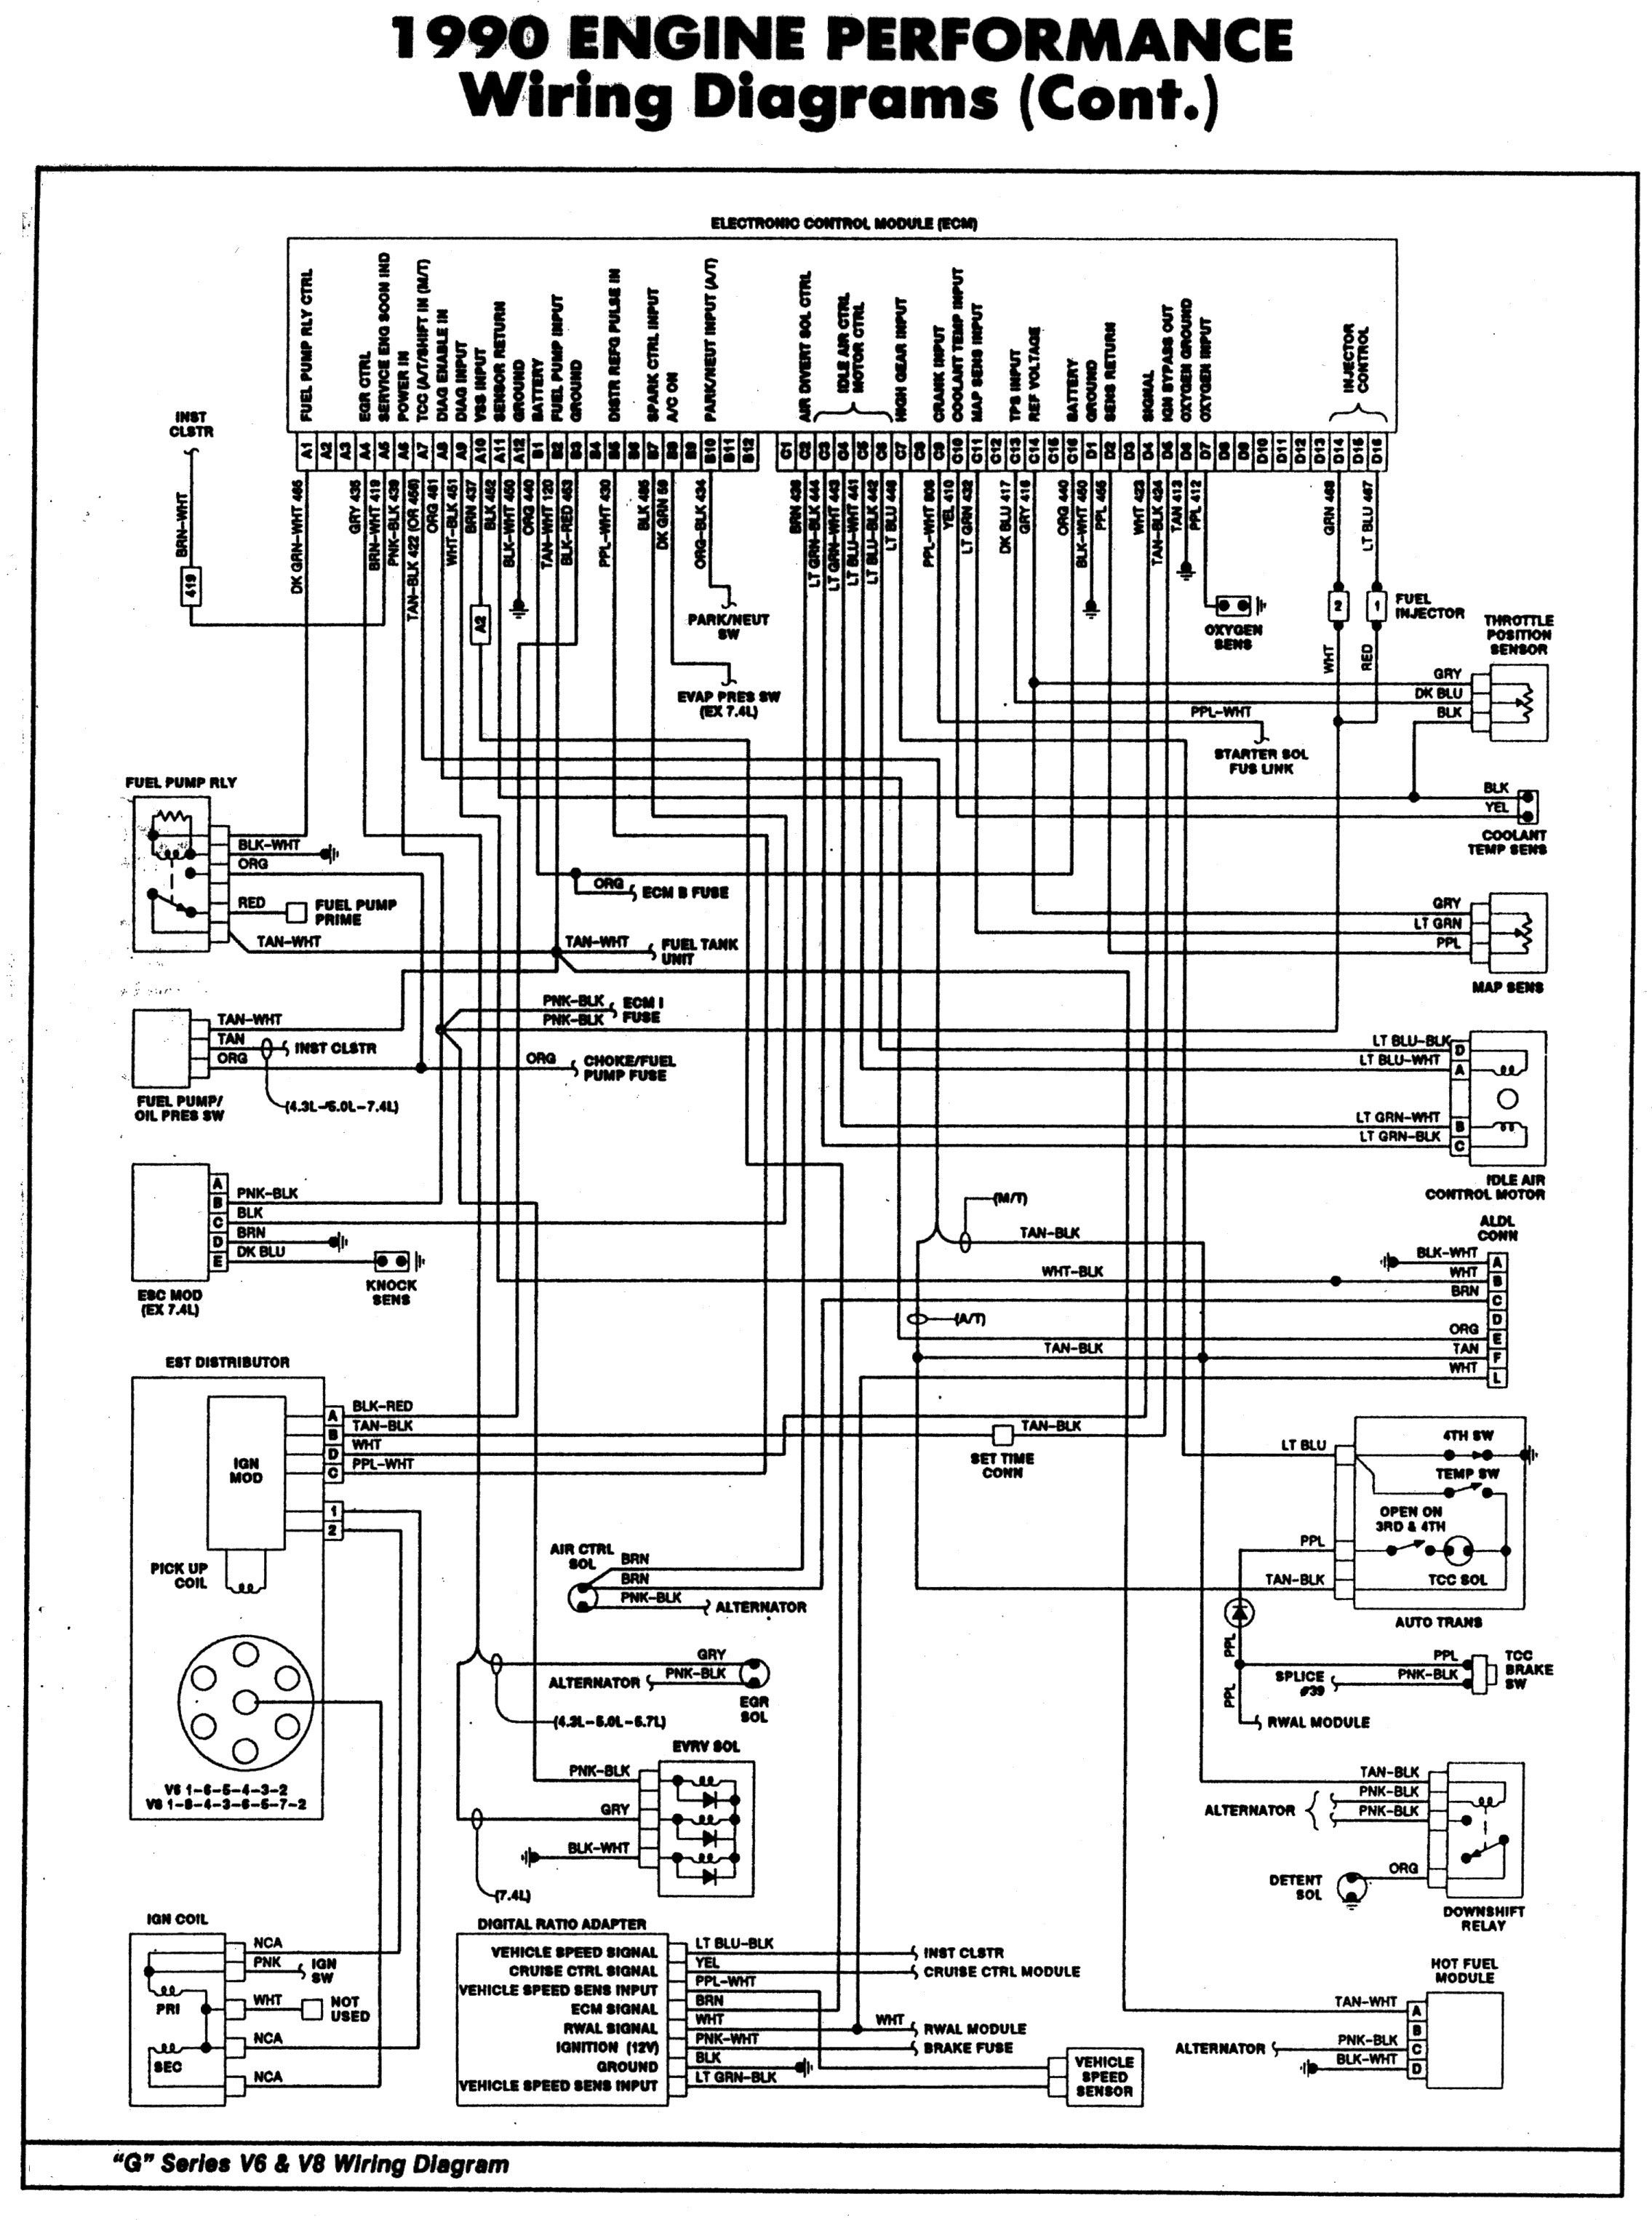 94 chevy k1500 wiring diagram wiring diagram forward 1990 chevy k1500 wiring diagram 94 chevy wiring [ 2271 x 3051 Pixel ]